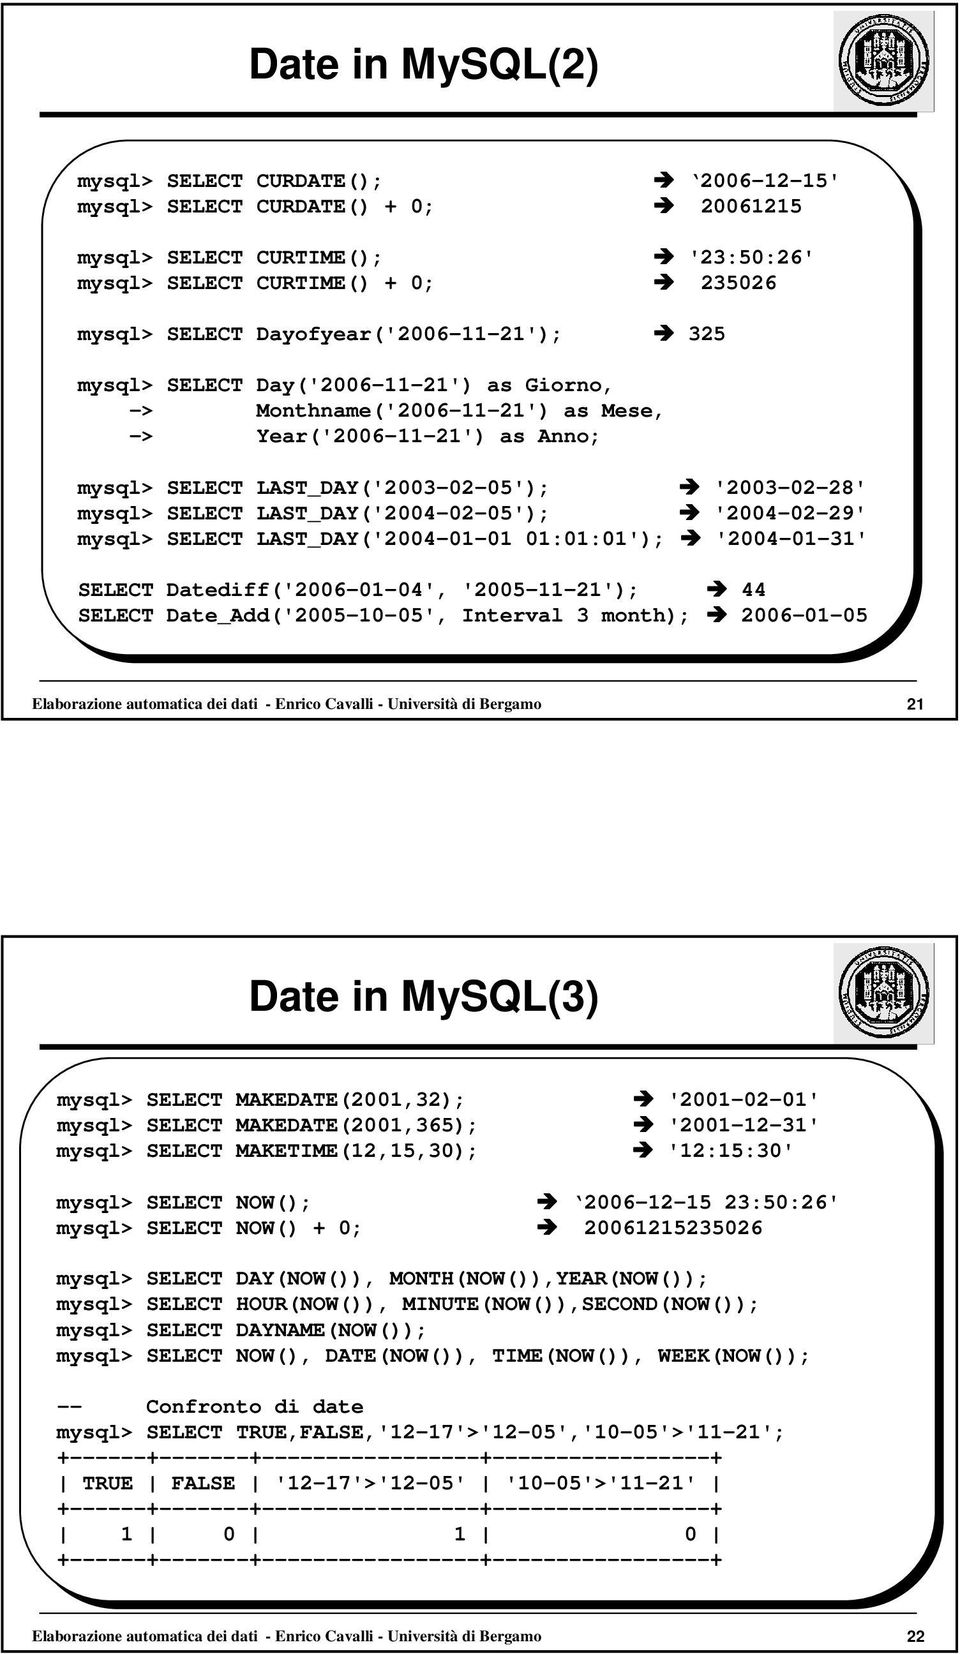 SELECT LAST_DAY('2004-02-05'); '2004-02-29' mysql> SELECT LAST_DAY('2004-01-01 01:01:01'); '2004-01-31' SELECT Datediff('2006-01-04', '2005-11-21'); 44 SELECT Date_Add('2005-10-05', Interval 3